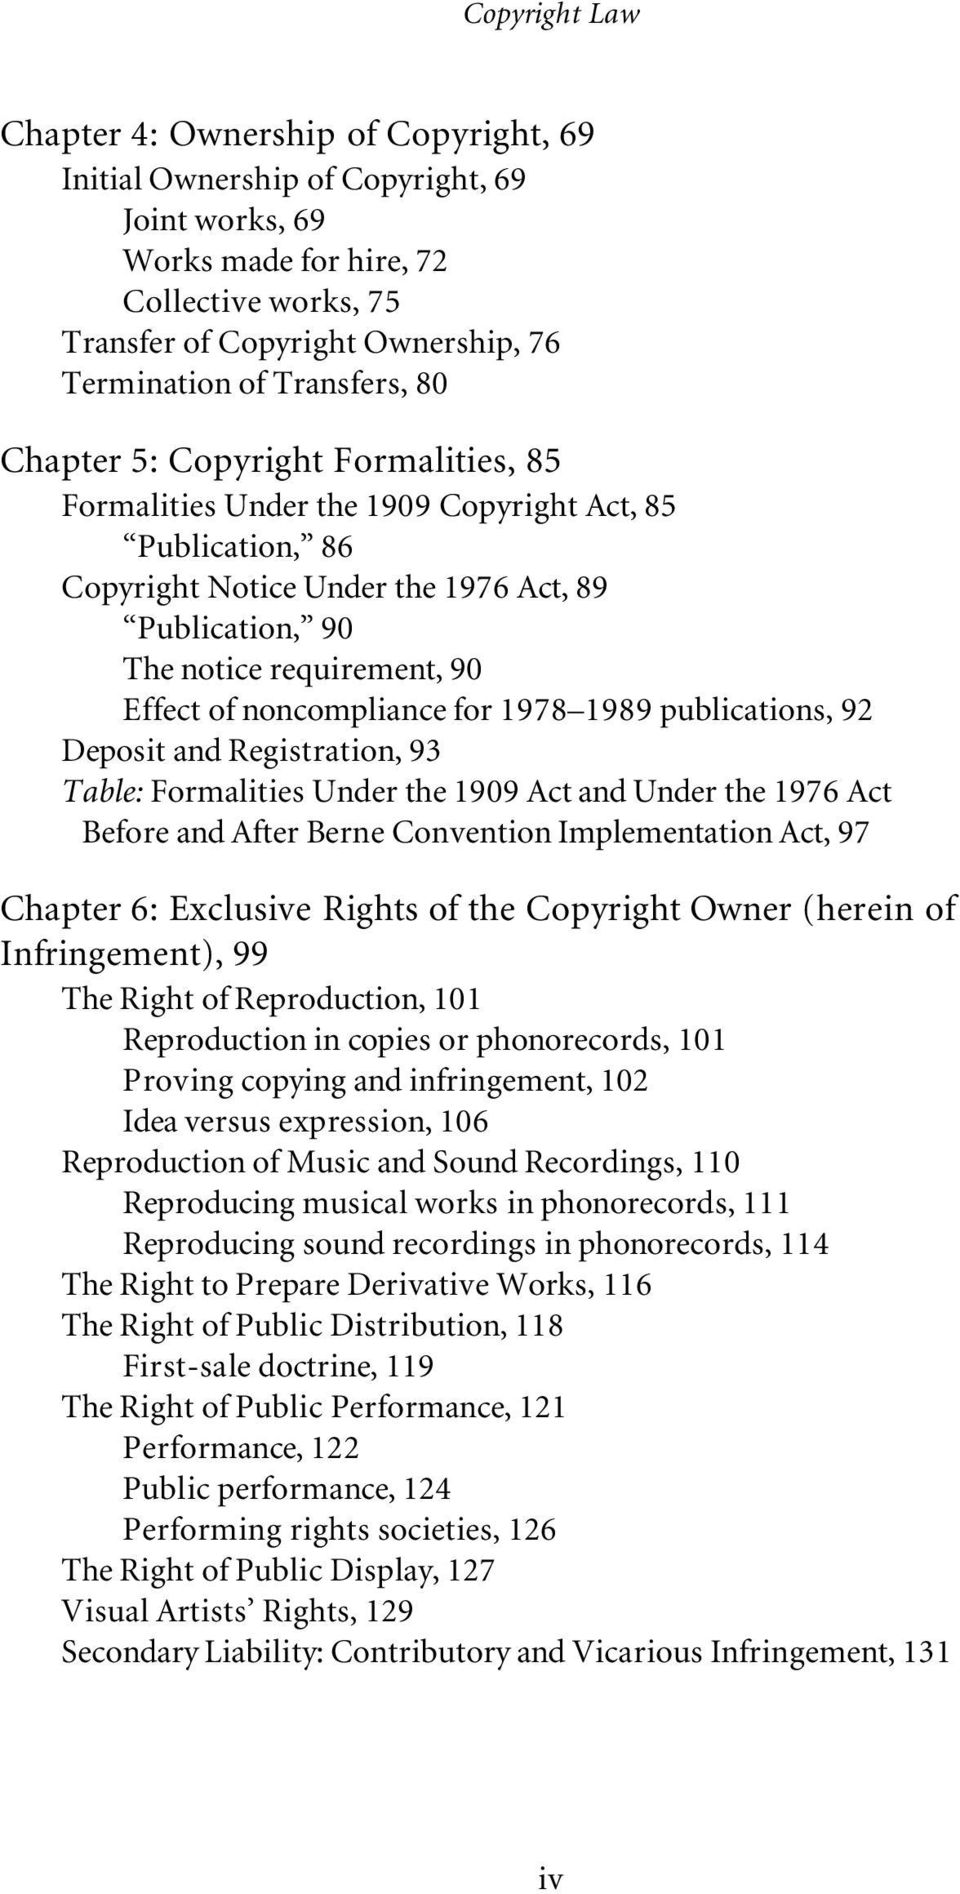 Effect of noncompliance for 1978 1989 publications, 92 Deposit and Registration, 93 Table: Formalities Under the 1909 Act and Under the 1976 Act Before and After Berne Convention Implementation Act,